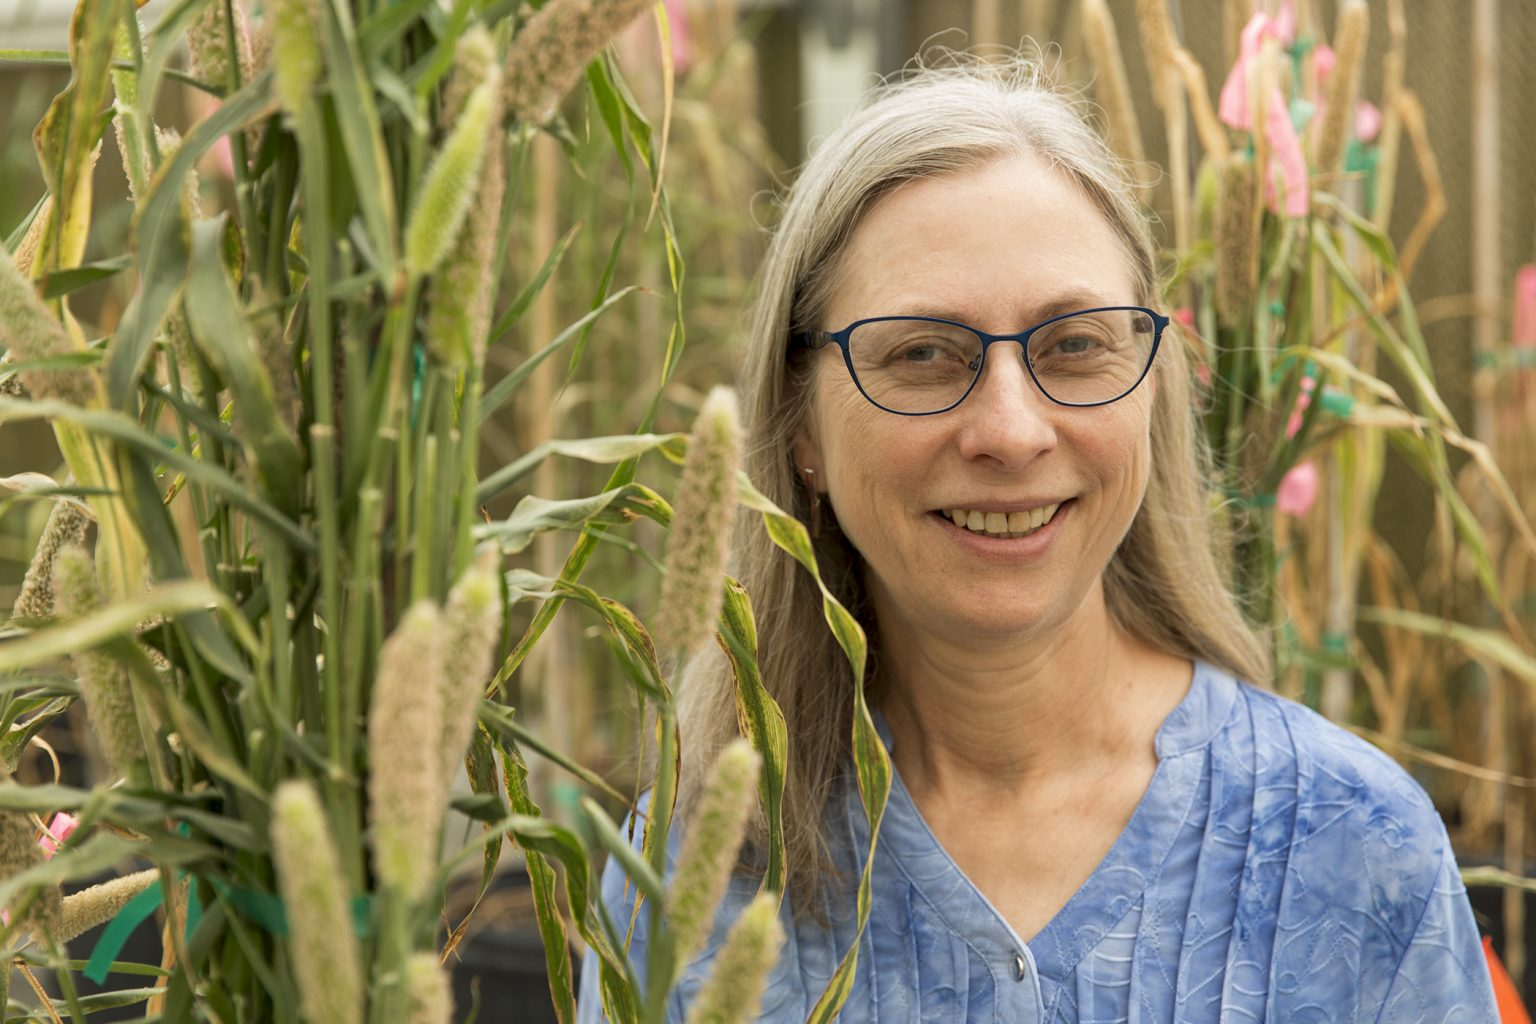 Peggy Ozias-Akins, a global leader in the application of biotechnology for crop improvement, has been named UGA's recipient of the SEC Faculty Achievement Award. She is pictured in her greenhouse surrounded by Pennisetum (pearl millet) hybrid plants.